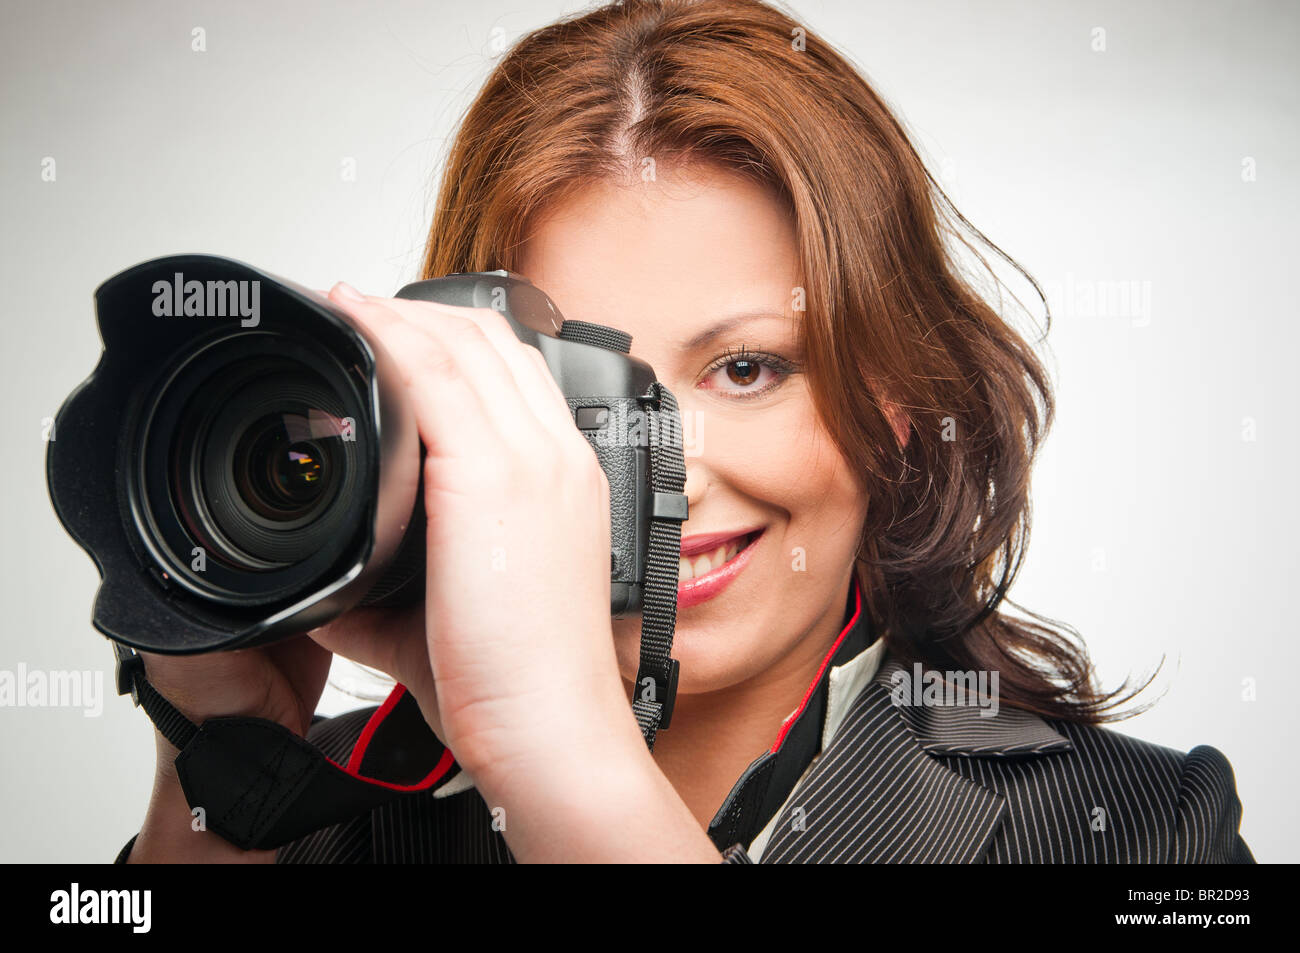 young girl with photocamera - Stock Image